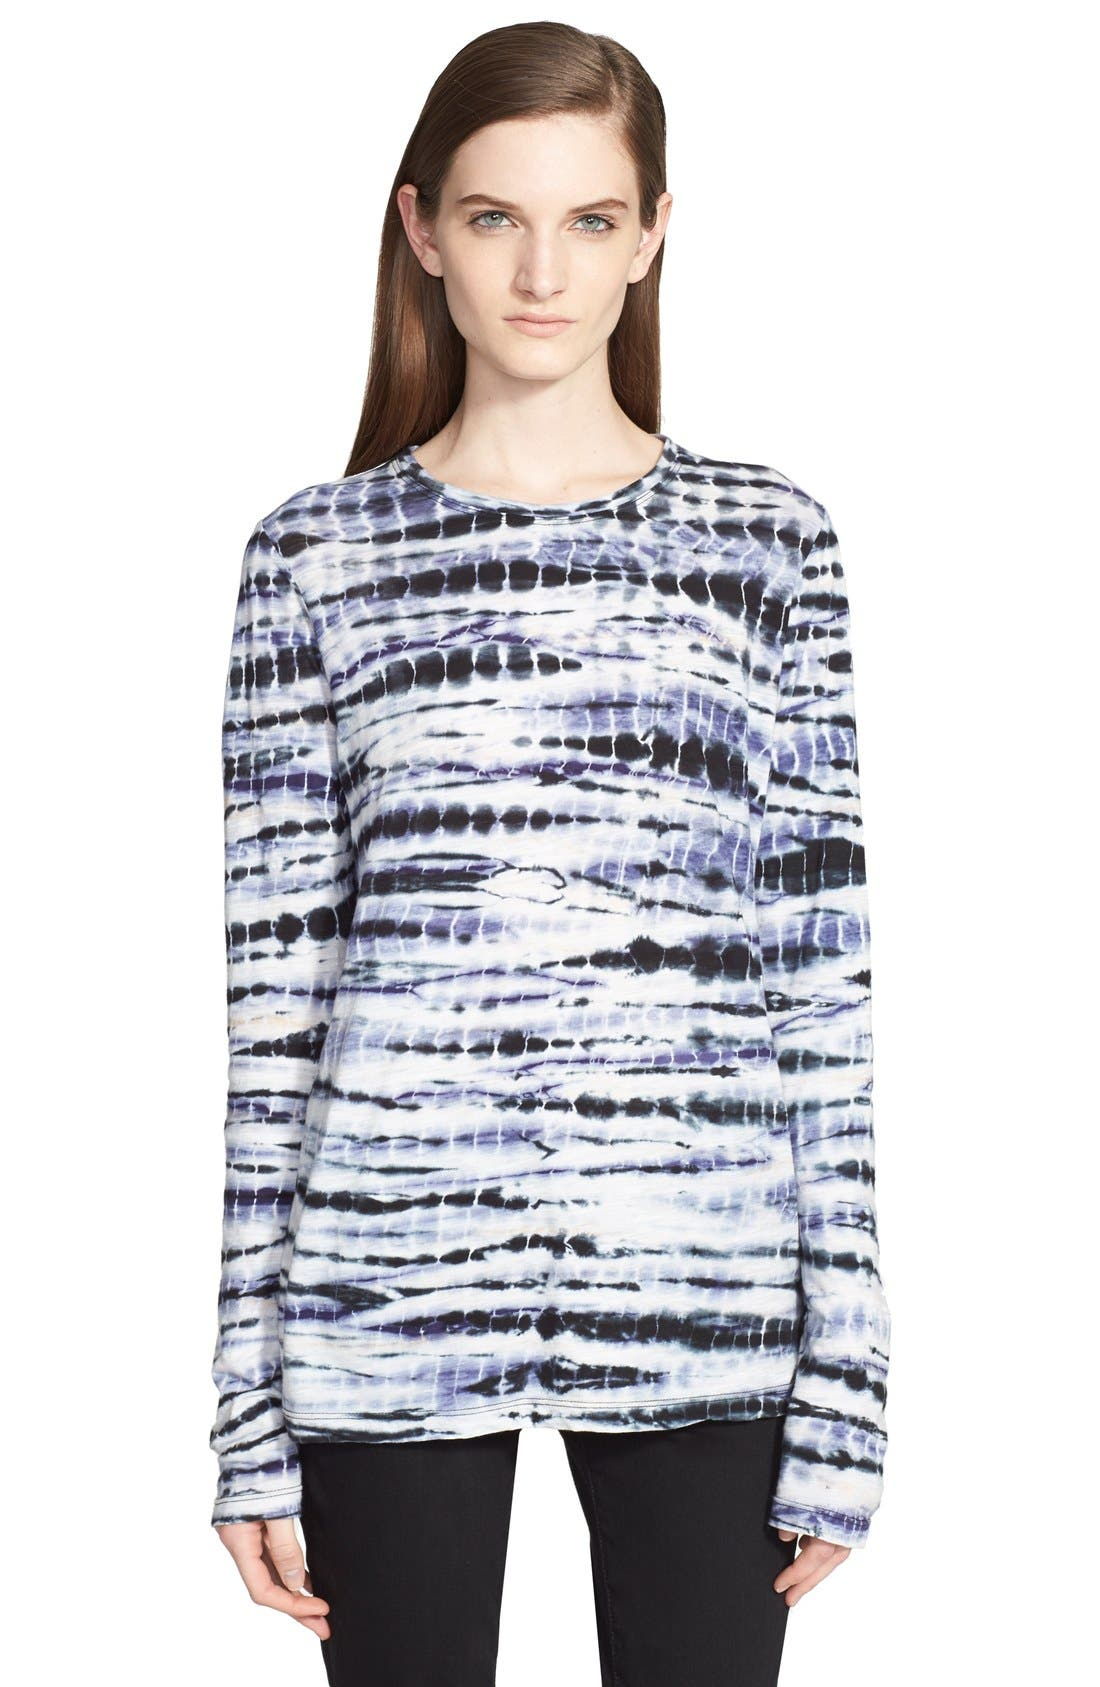 Alternate Image 1 Selected - Proenza Schouler Tie Dye Tissue Jersey Long Sleeve Tee